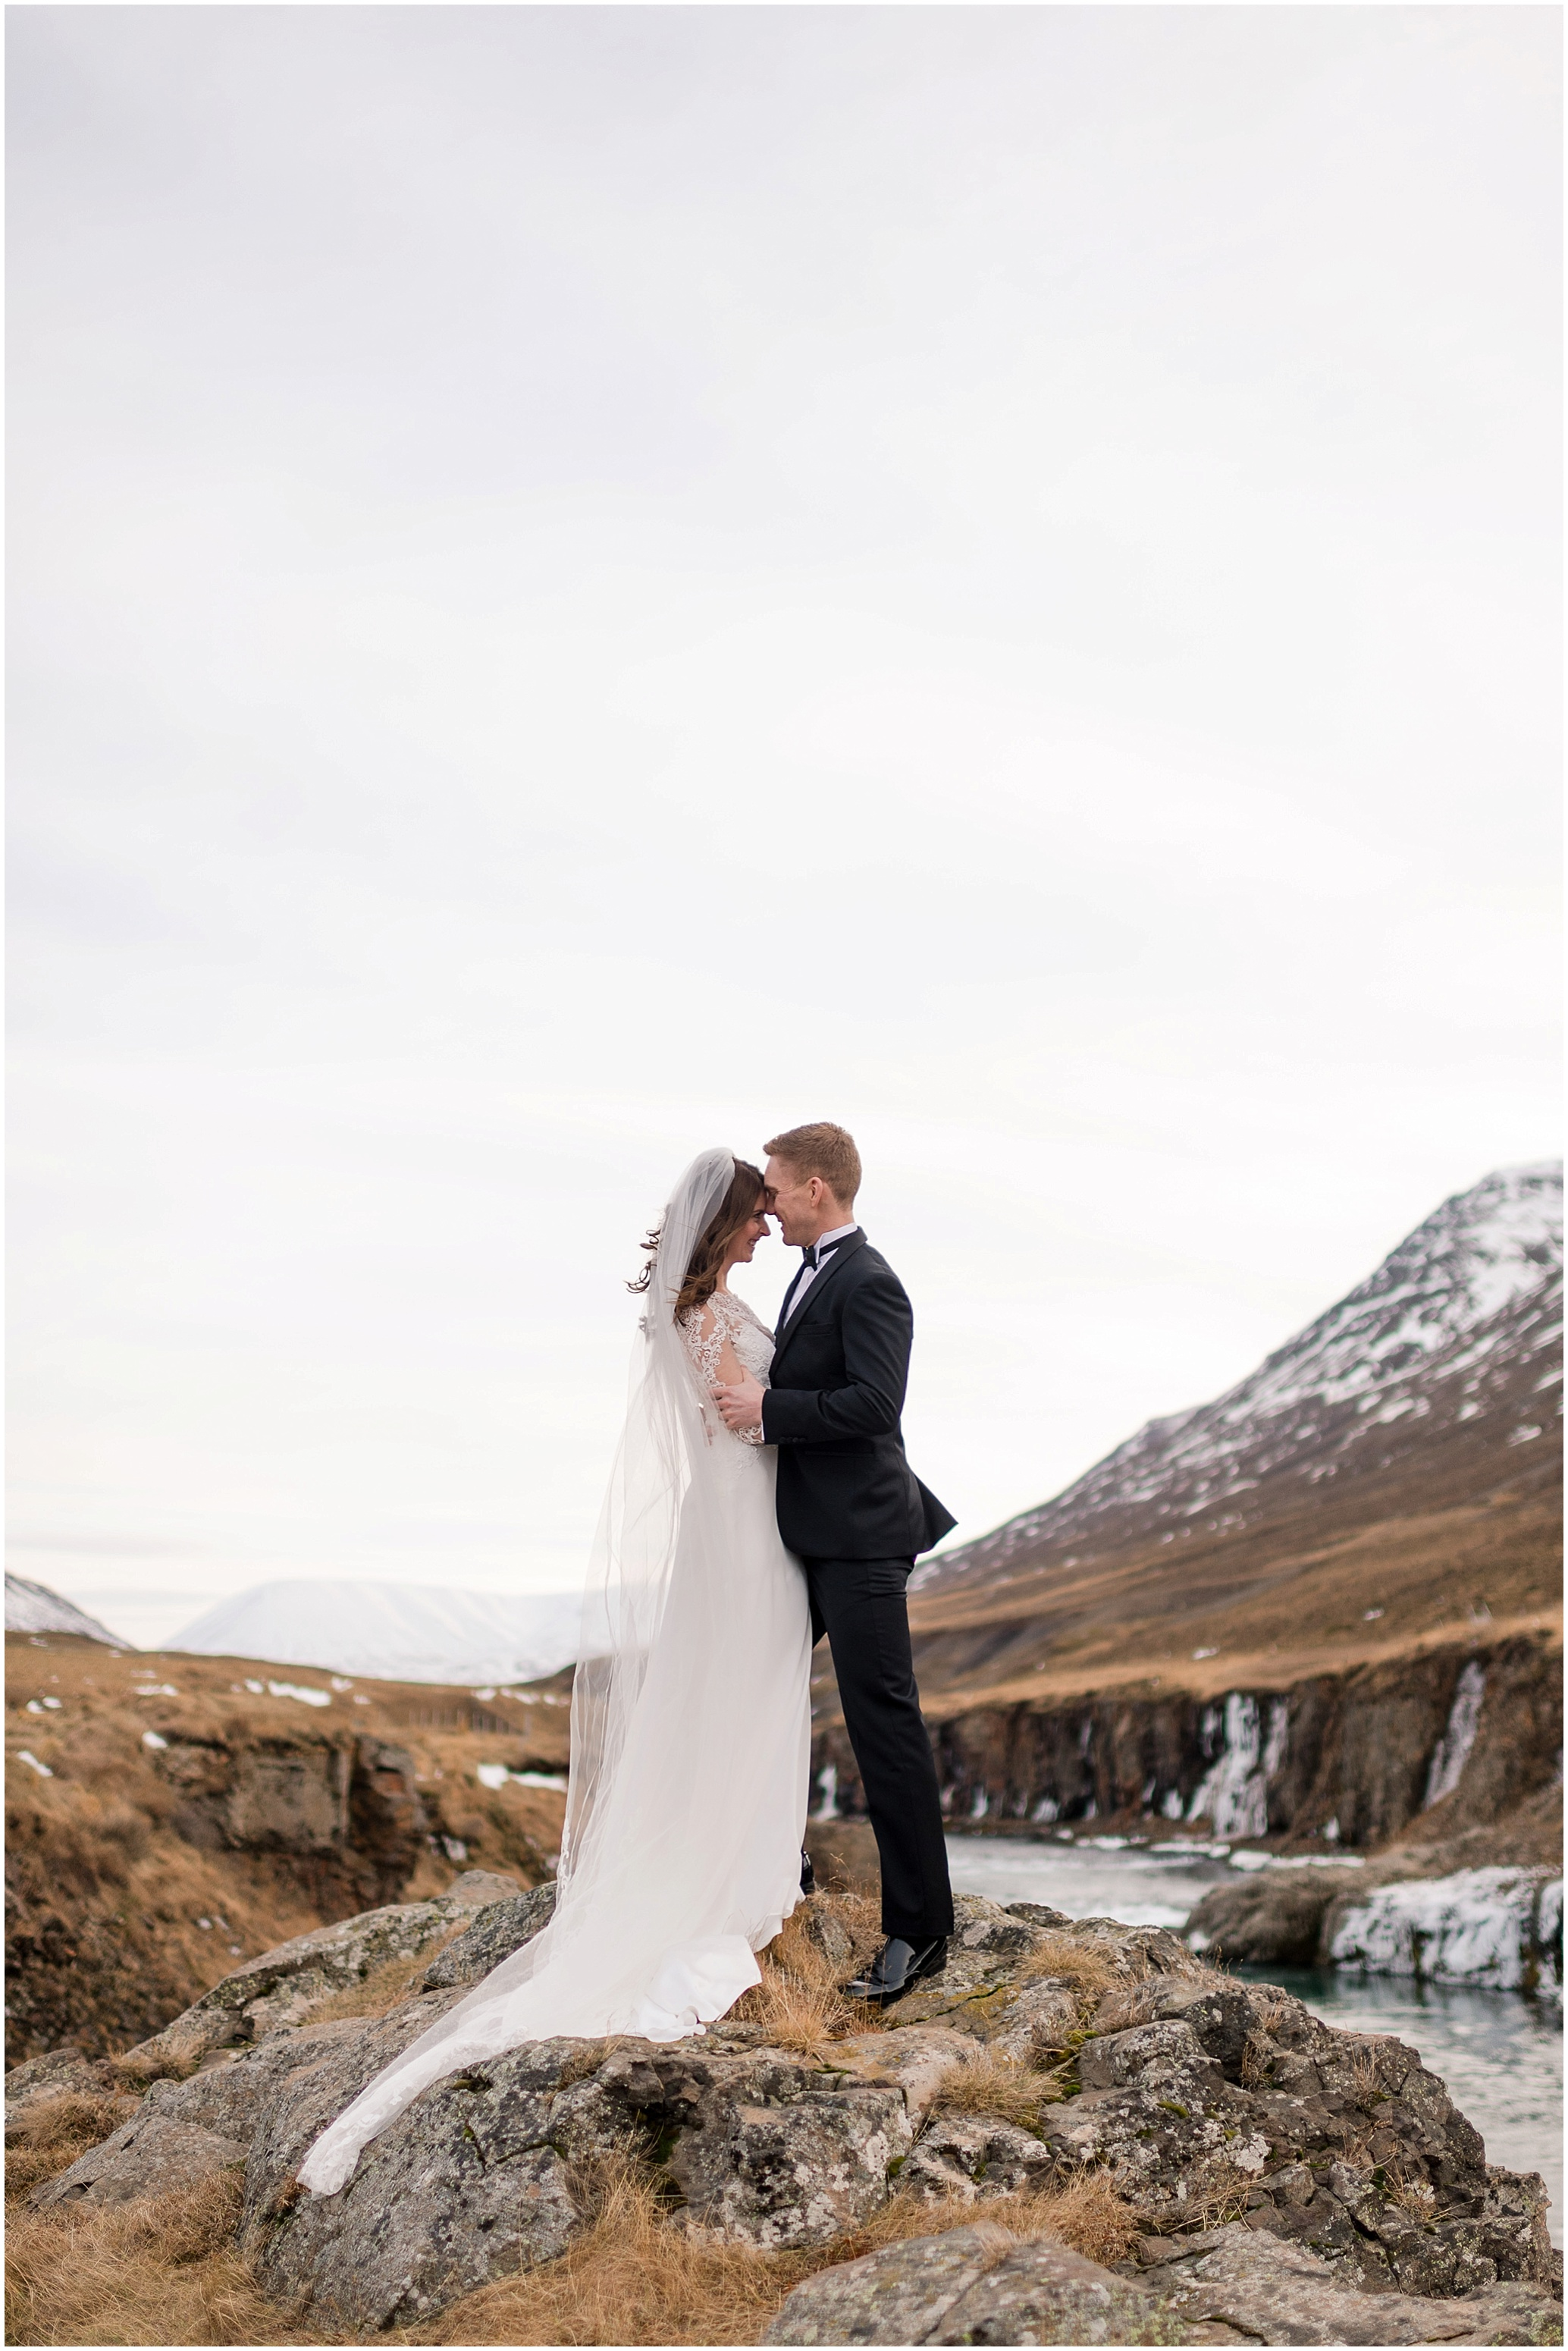 Hannah Leigh Photography Akureyri Iceland Wedding_3191.jpg